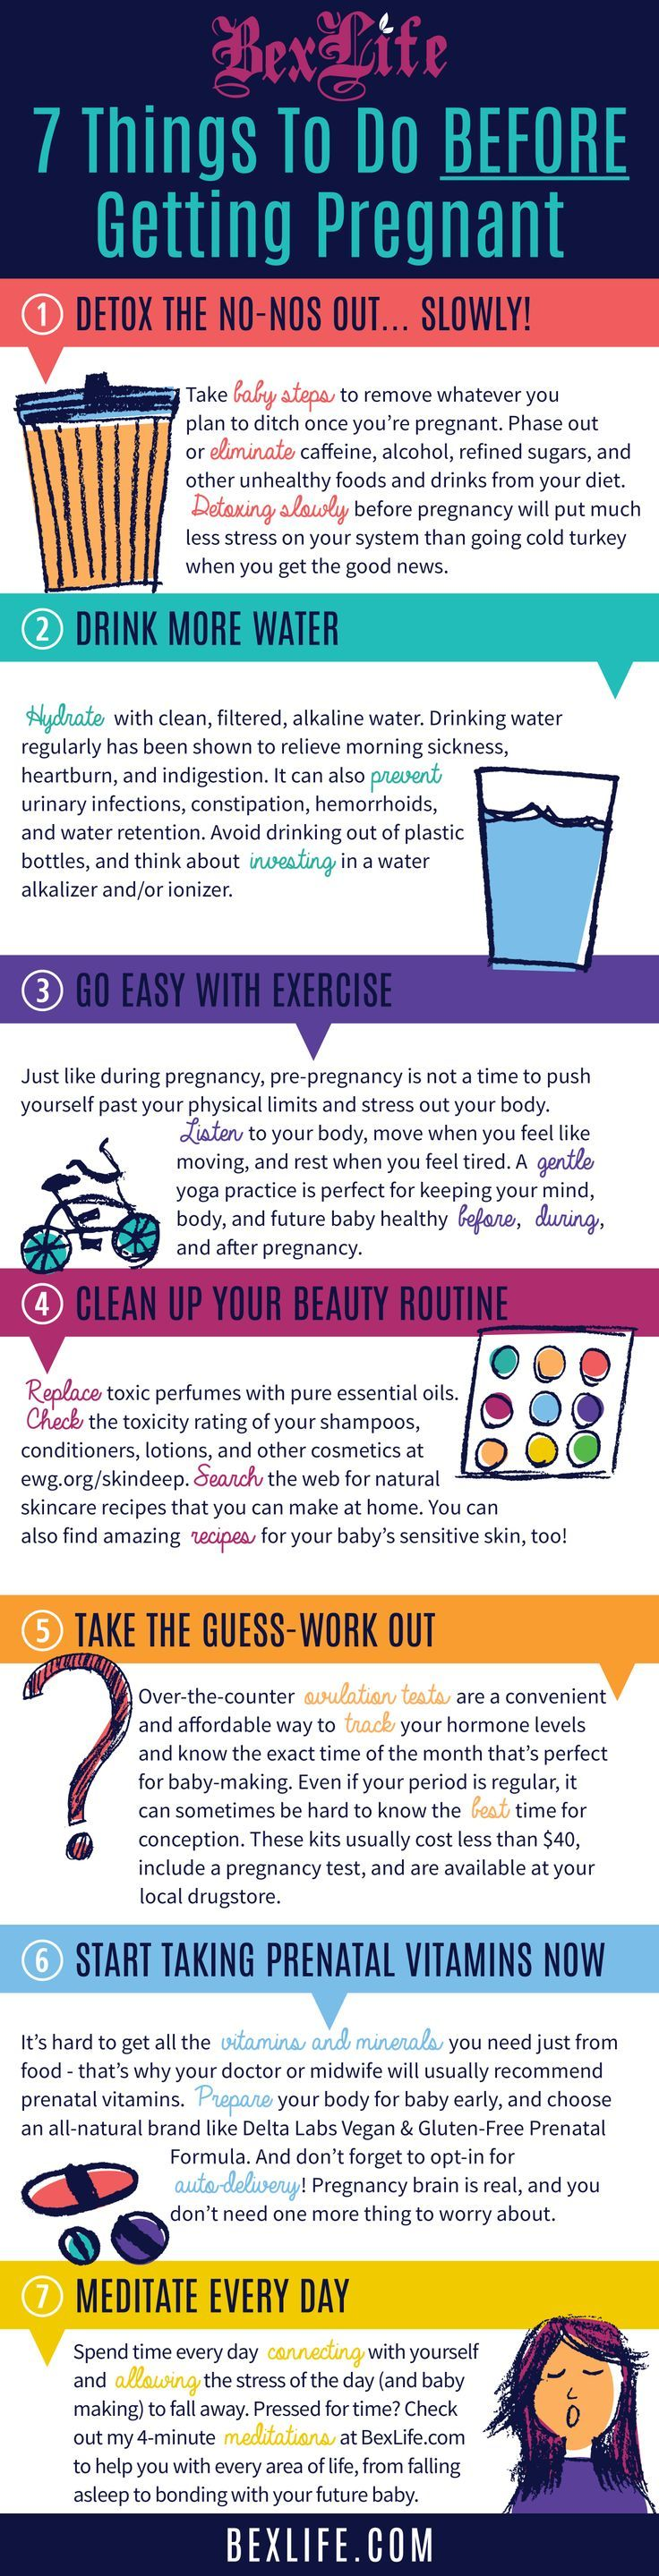 7 Things To Do Before Getting Pregnant! Great tips on how to prepare your body…